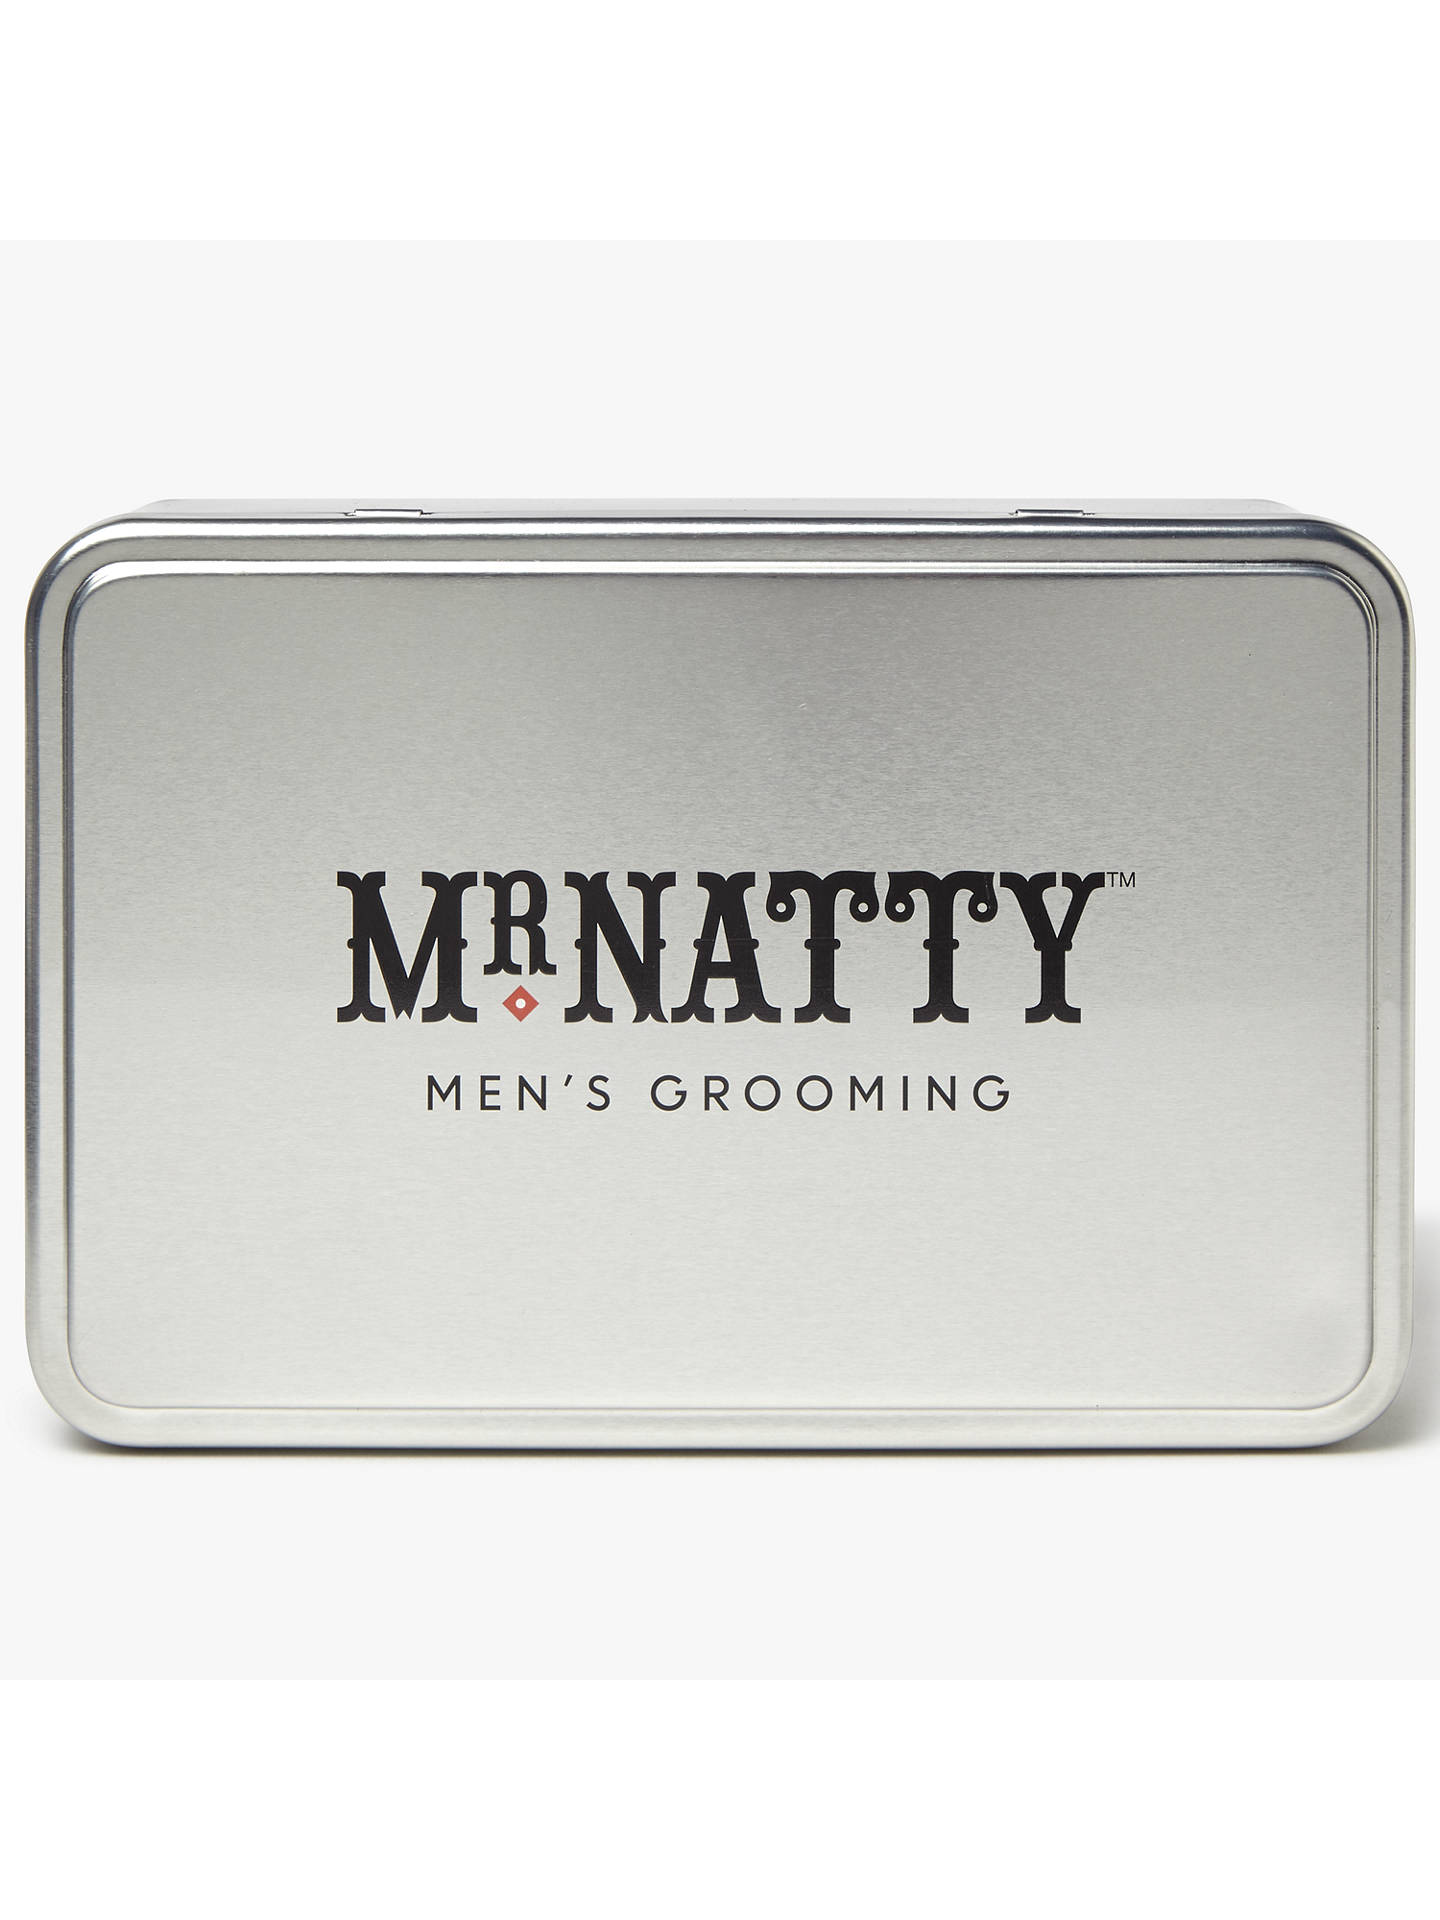 Buy Mr Natty Grooming Kit Tin, Silver Online at johnlewis.com